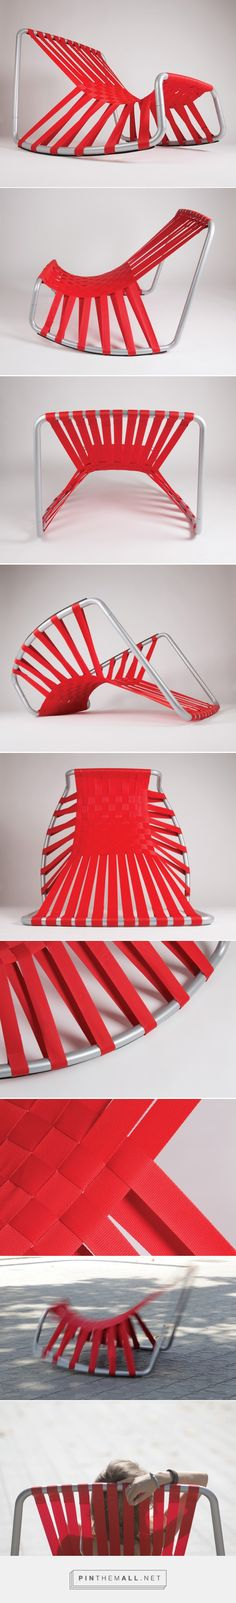 nap chair by irene chércoles mercader & andrea mauri carbonell - created via http://pinthemall.net